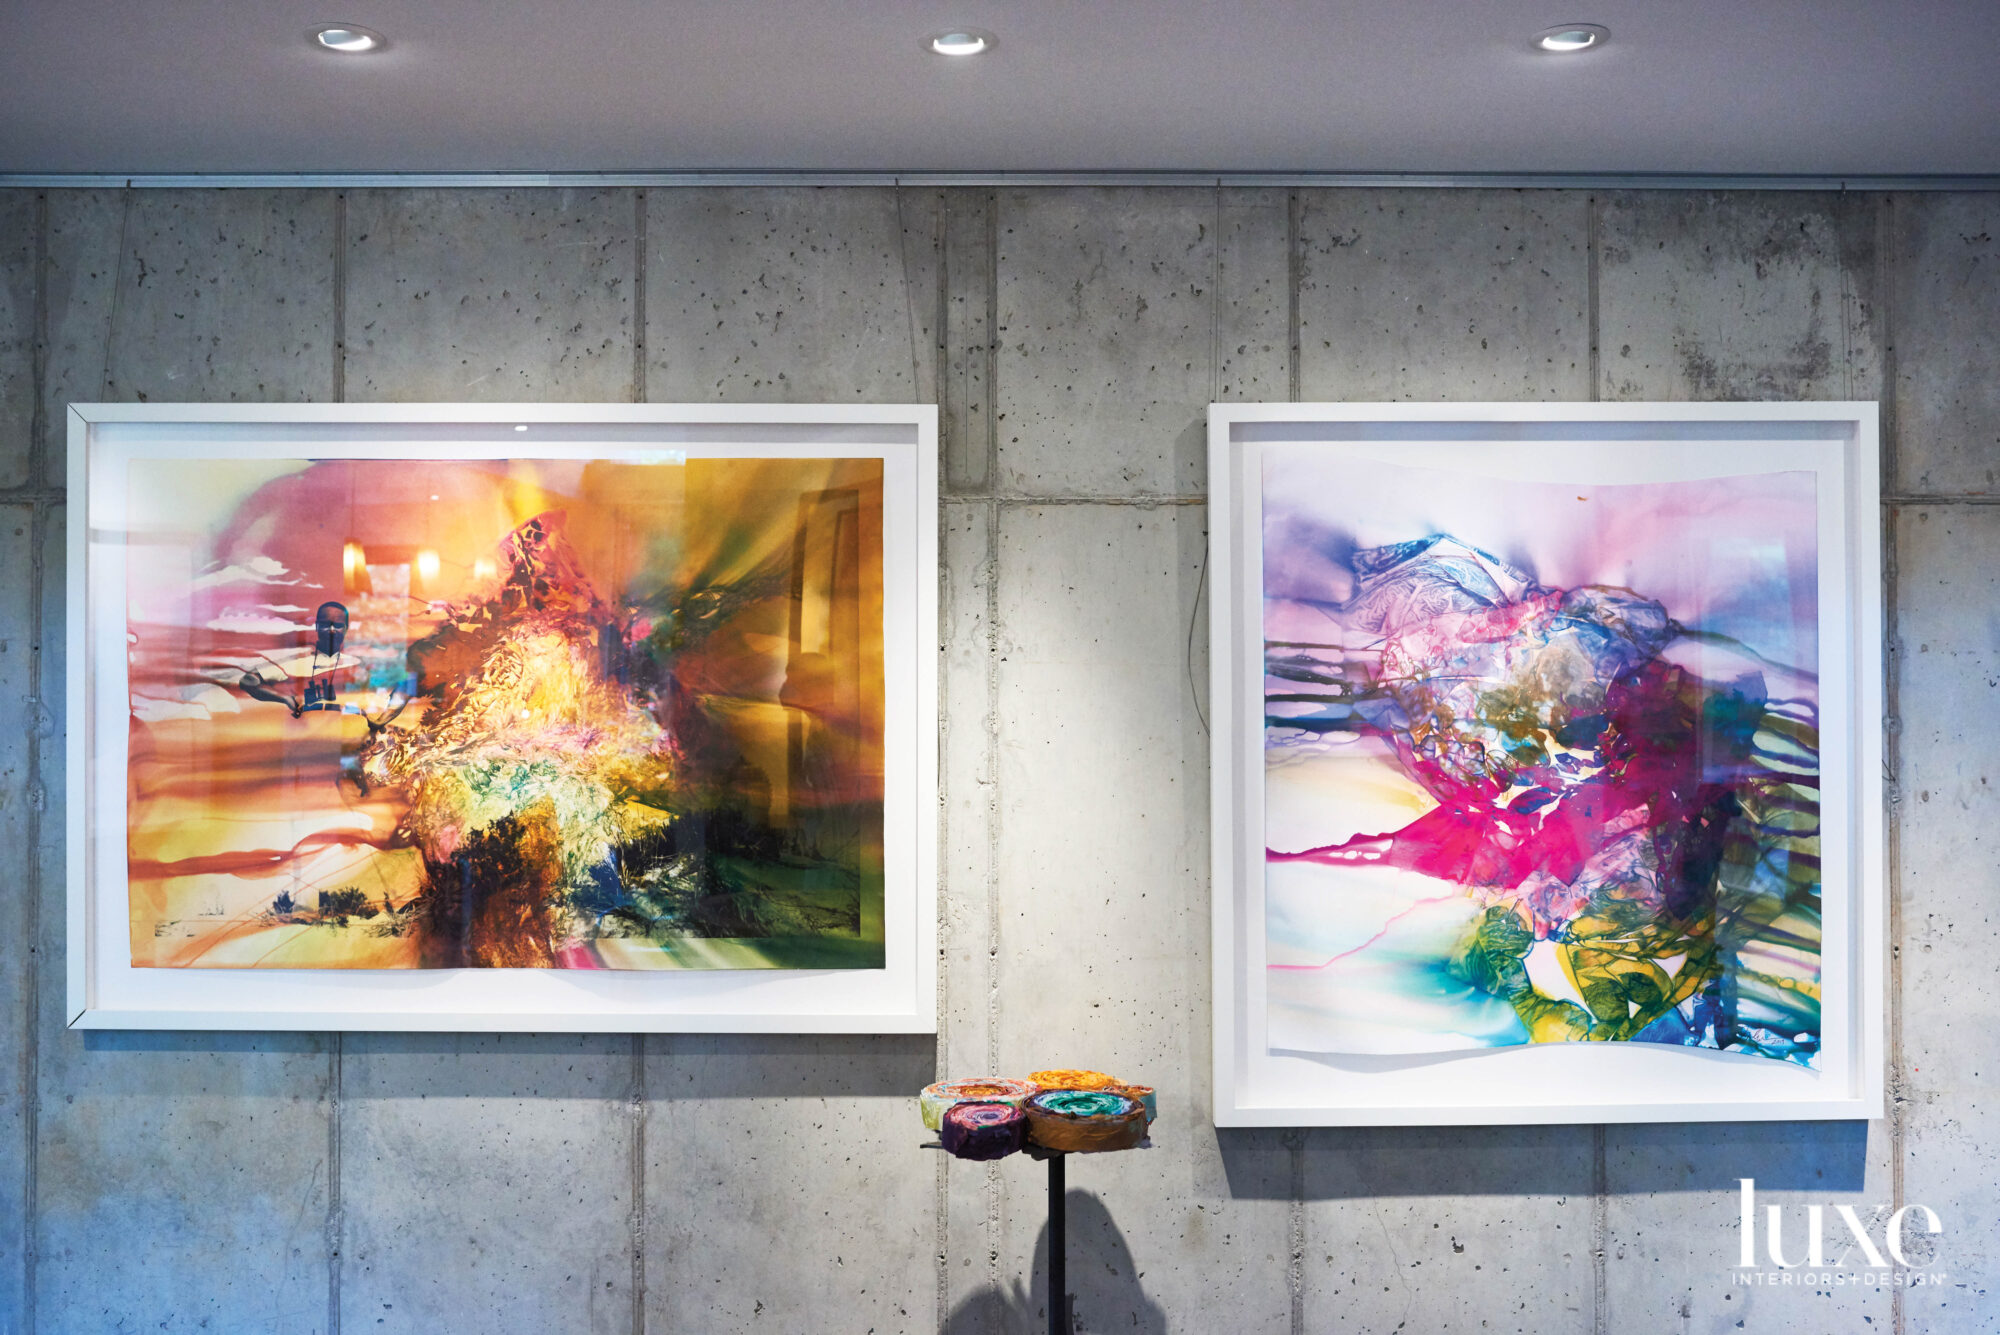 Framed artworks against a gray concrete wall